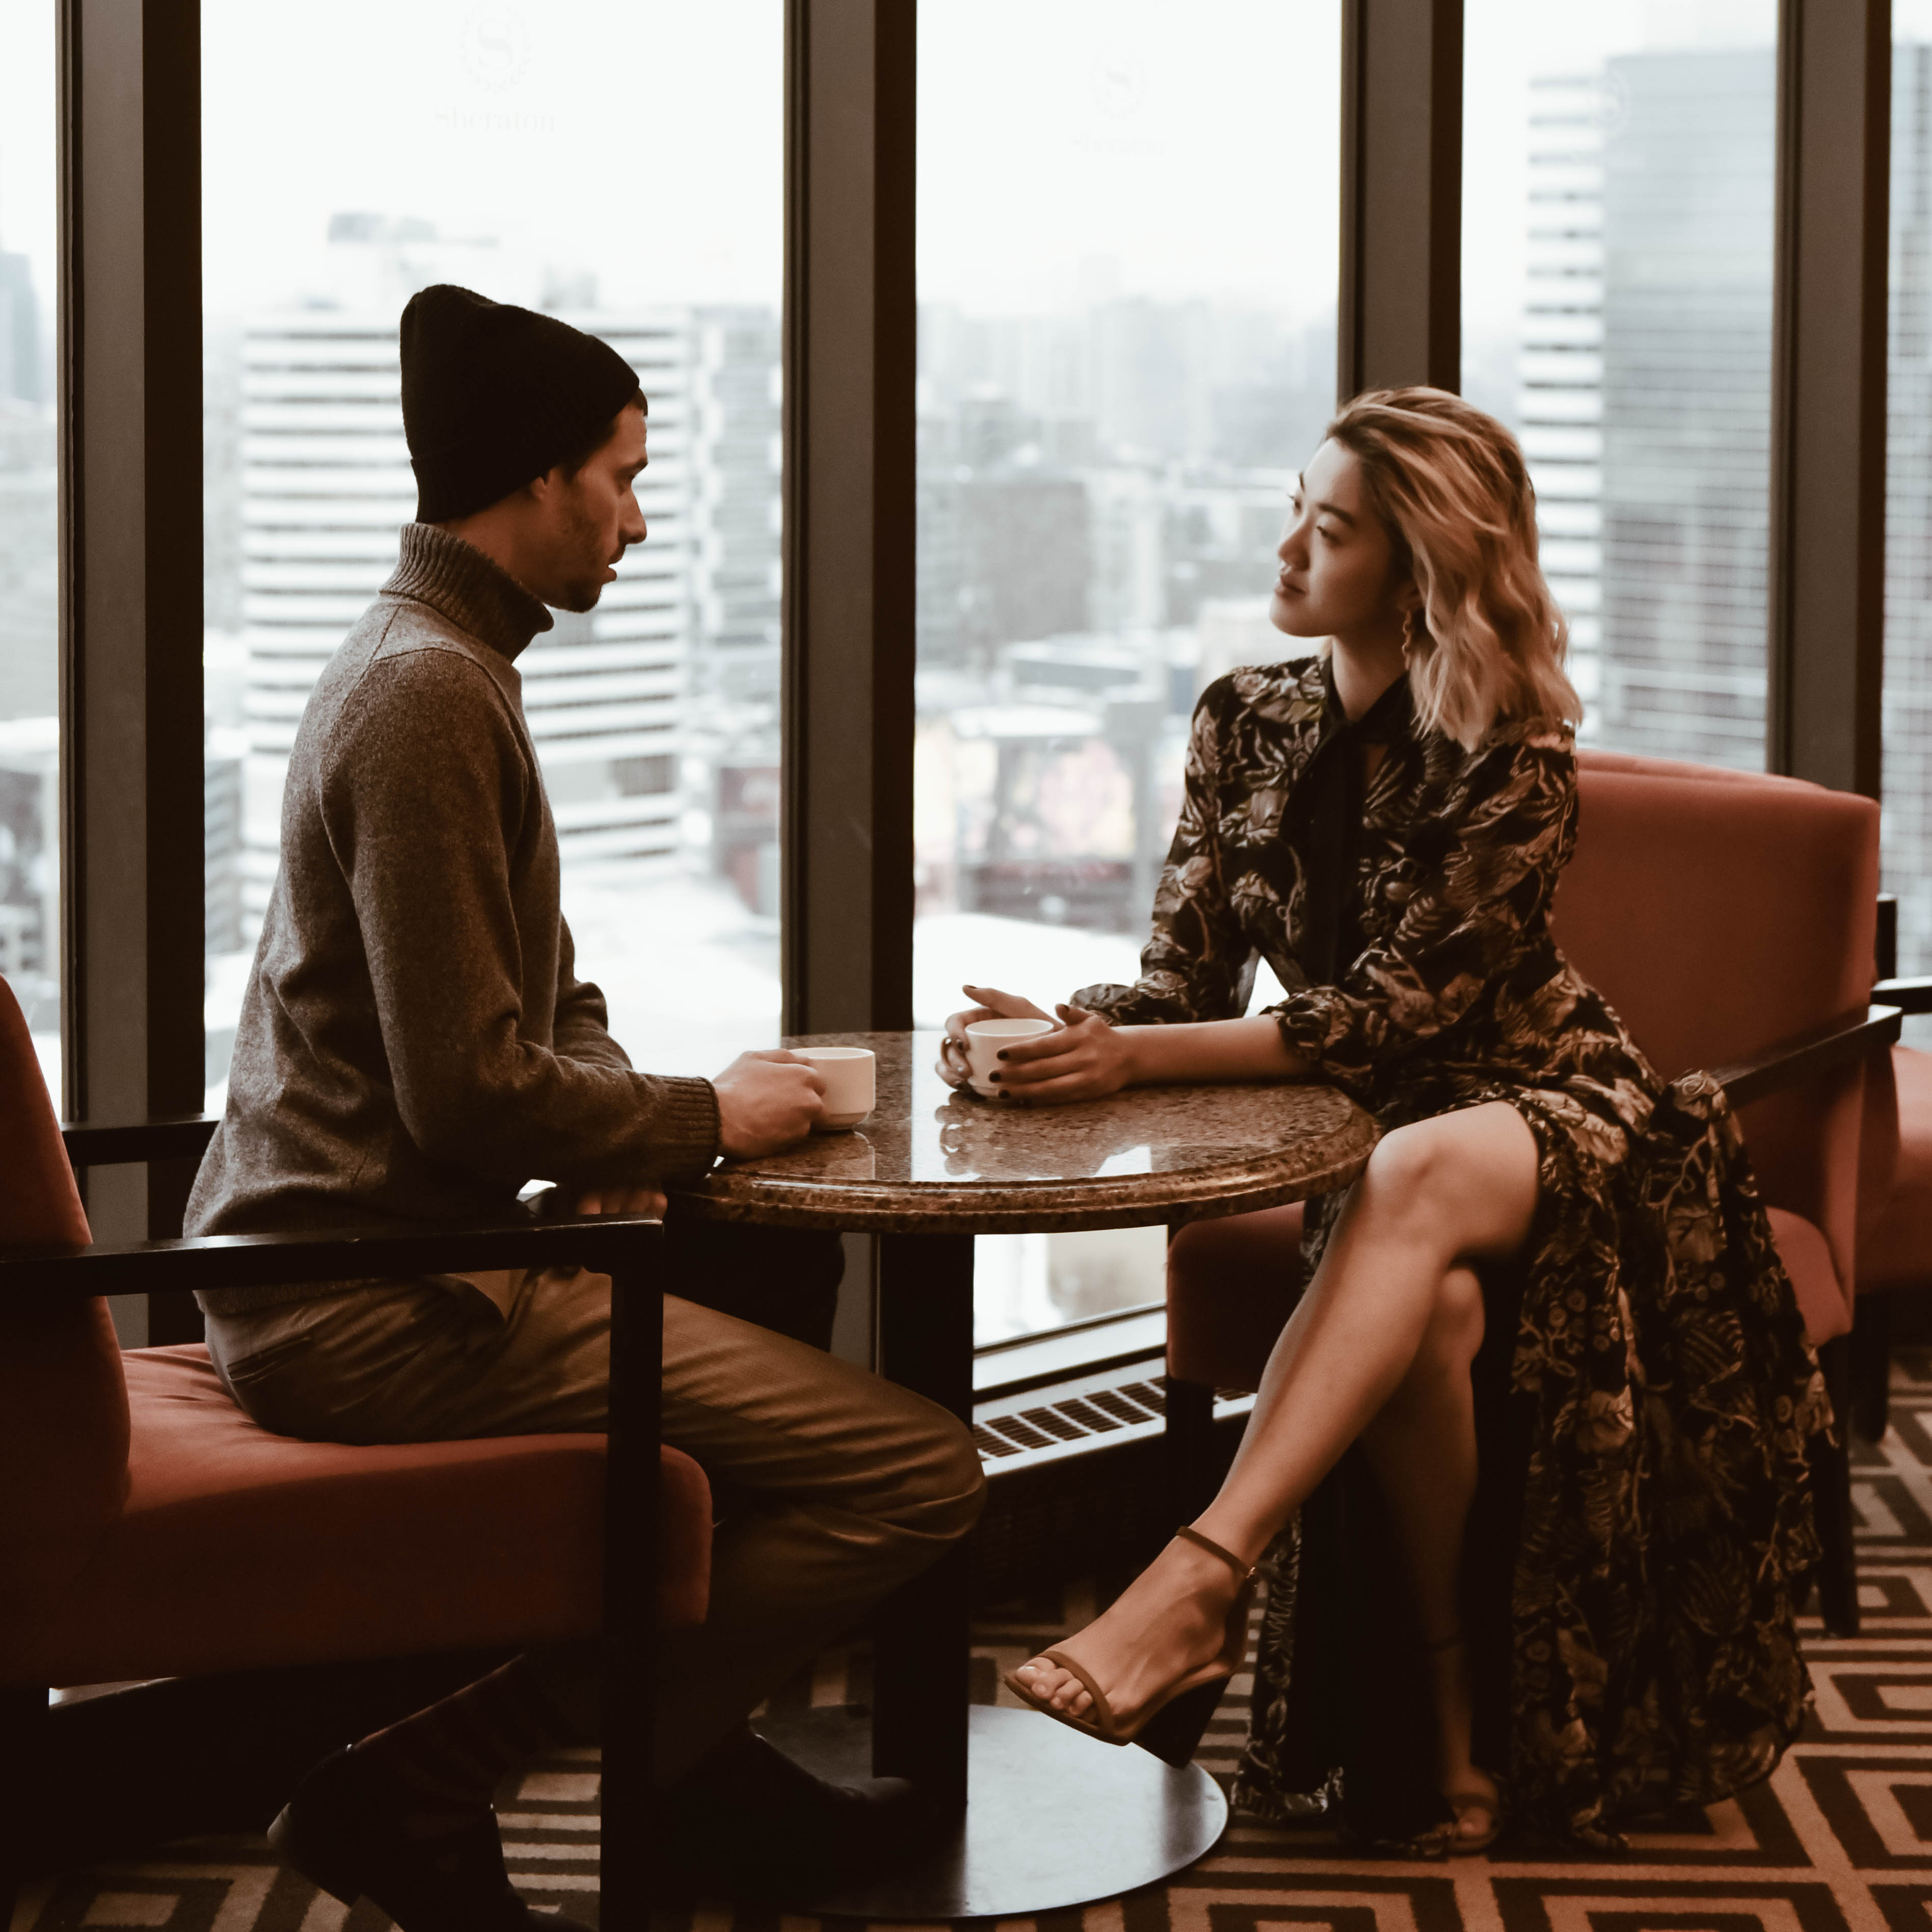 Sharing our dreams and goals for 2018 on the 43rd floor Club Lounge of the. Sheraton Centre